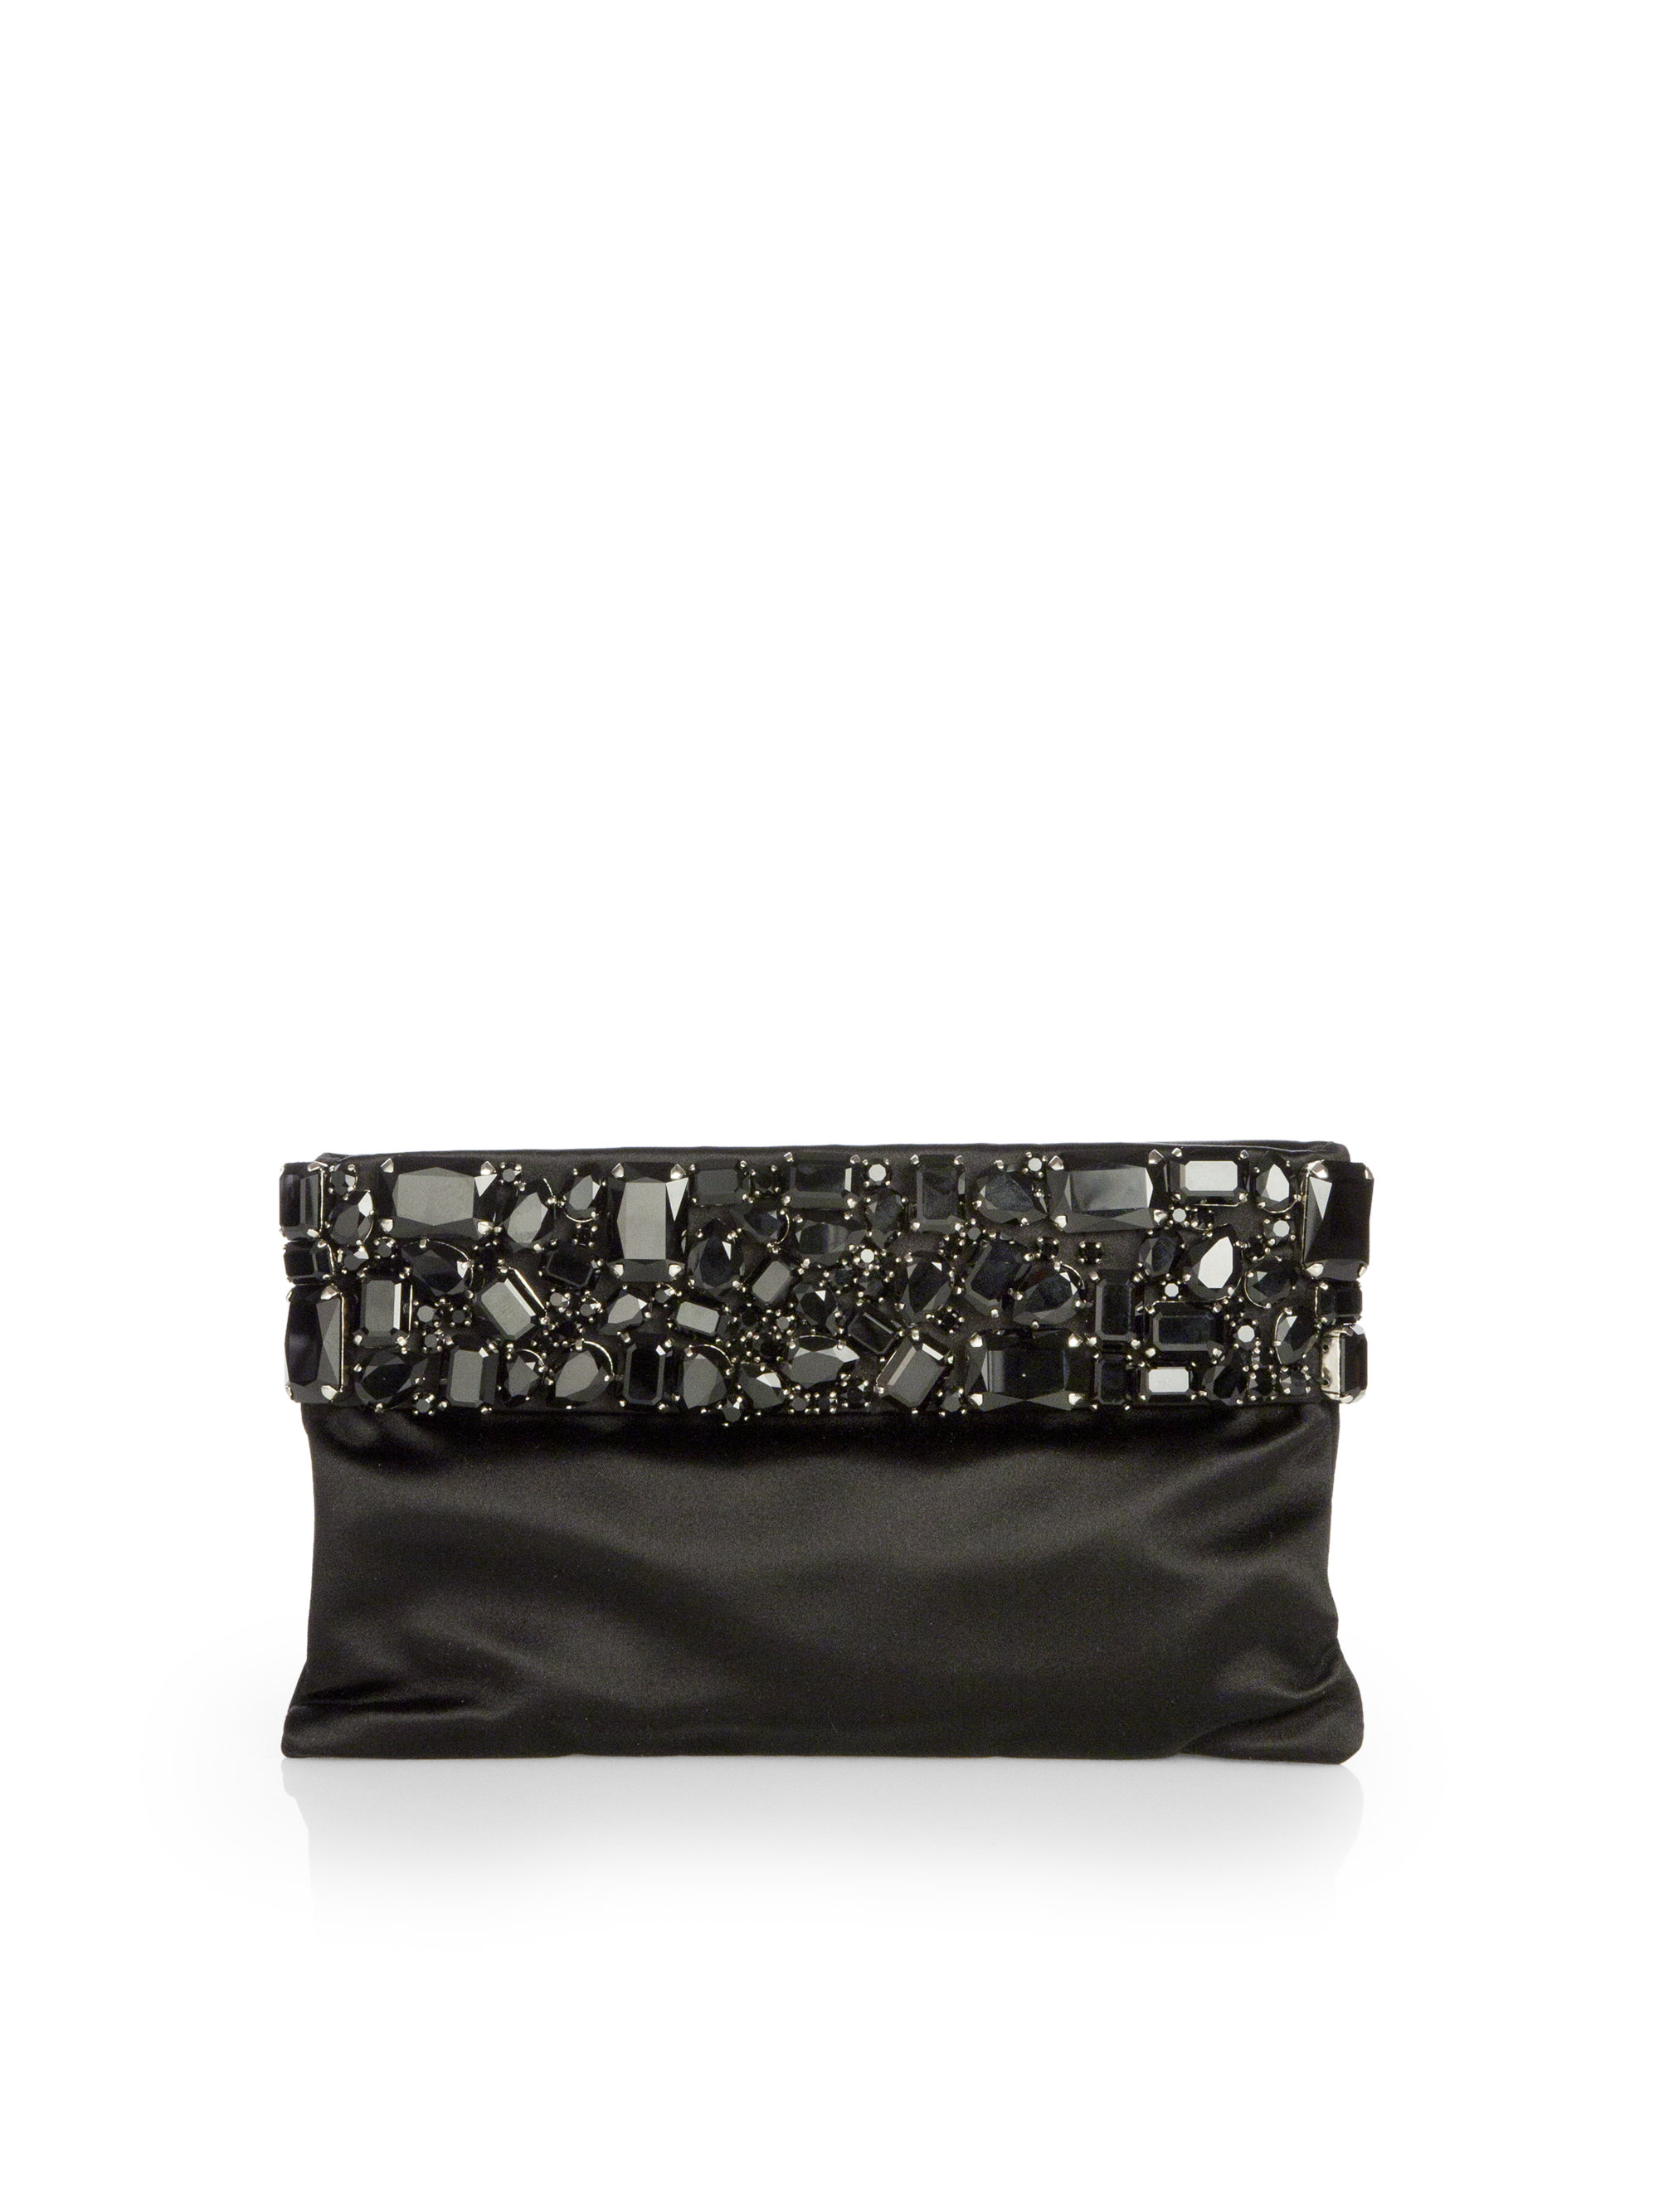 Prada Raso Jeweled Satin Clutch in Black (NERO-BLACK) | Lyst